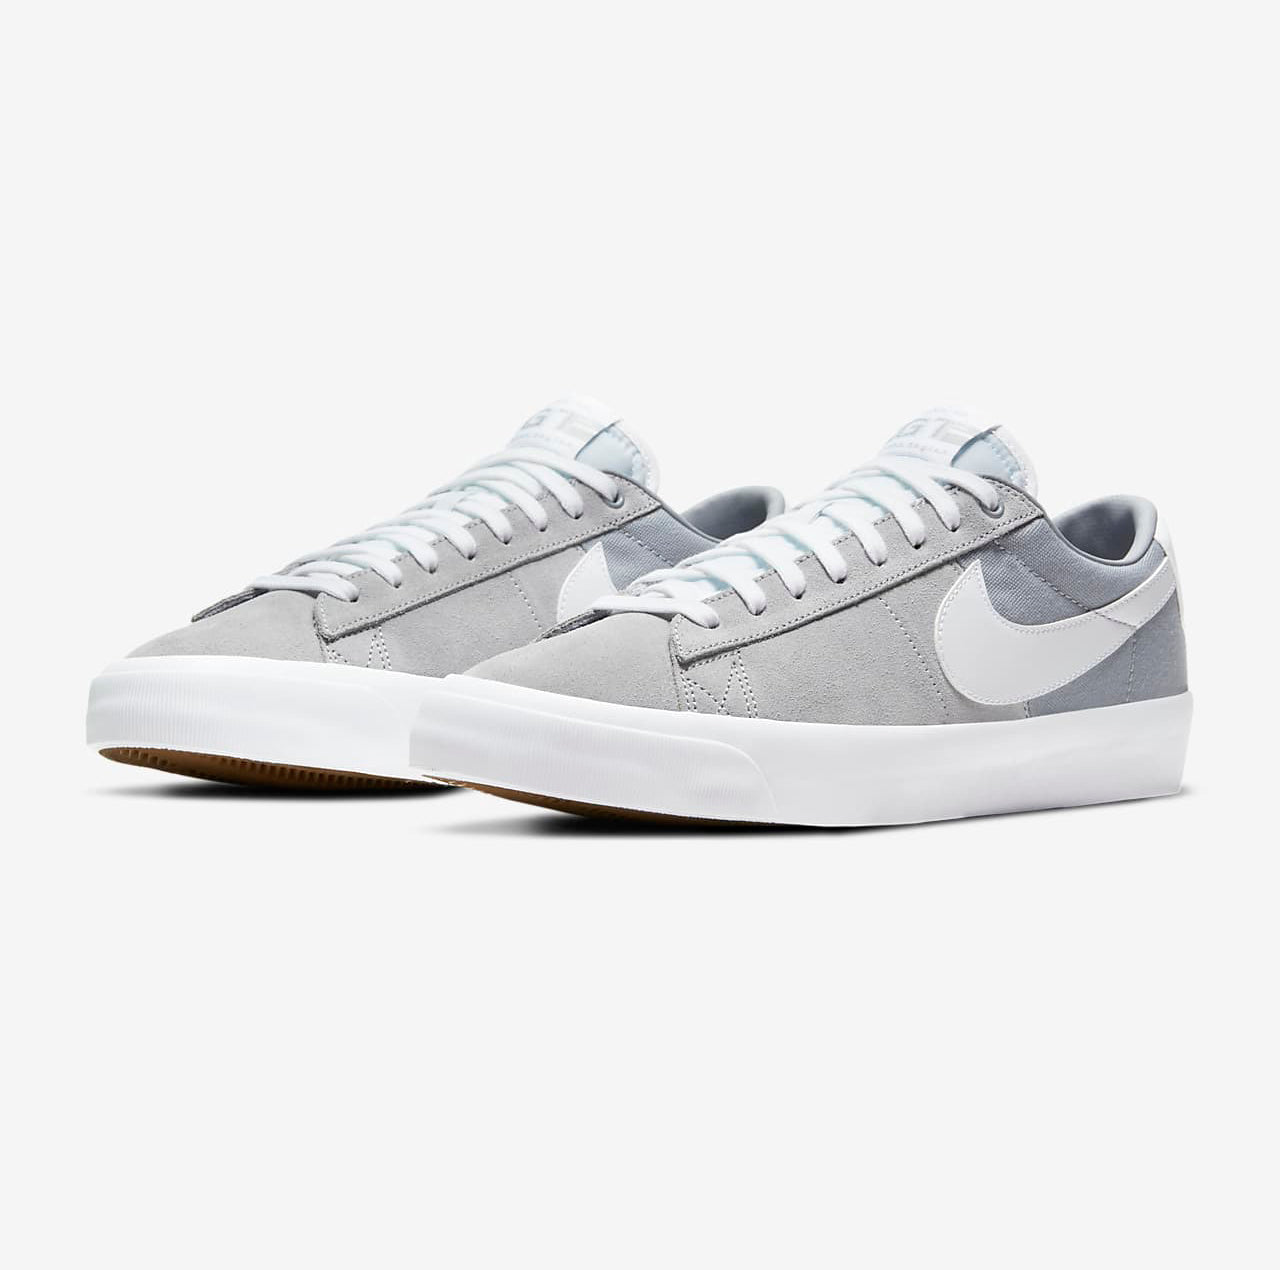 Nike SB Zoom Blazer Low Pro GT Mens Shoes - Wolf Grey/Wolf Grey/White/White